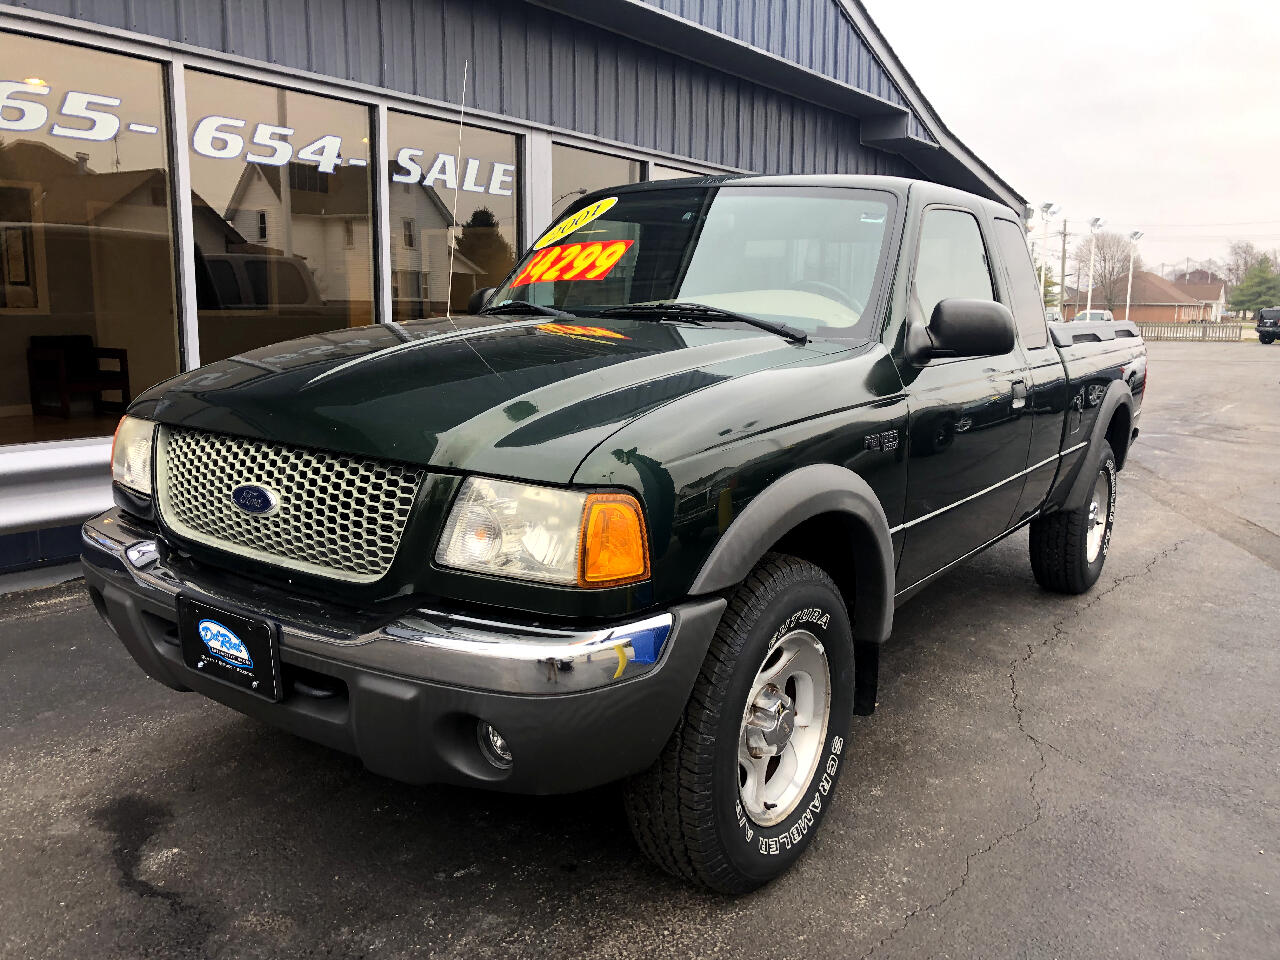 2001 Ford Ranger XLT SuperCab 4.0 Flareside w/Off-Road 4WD